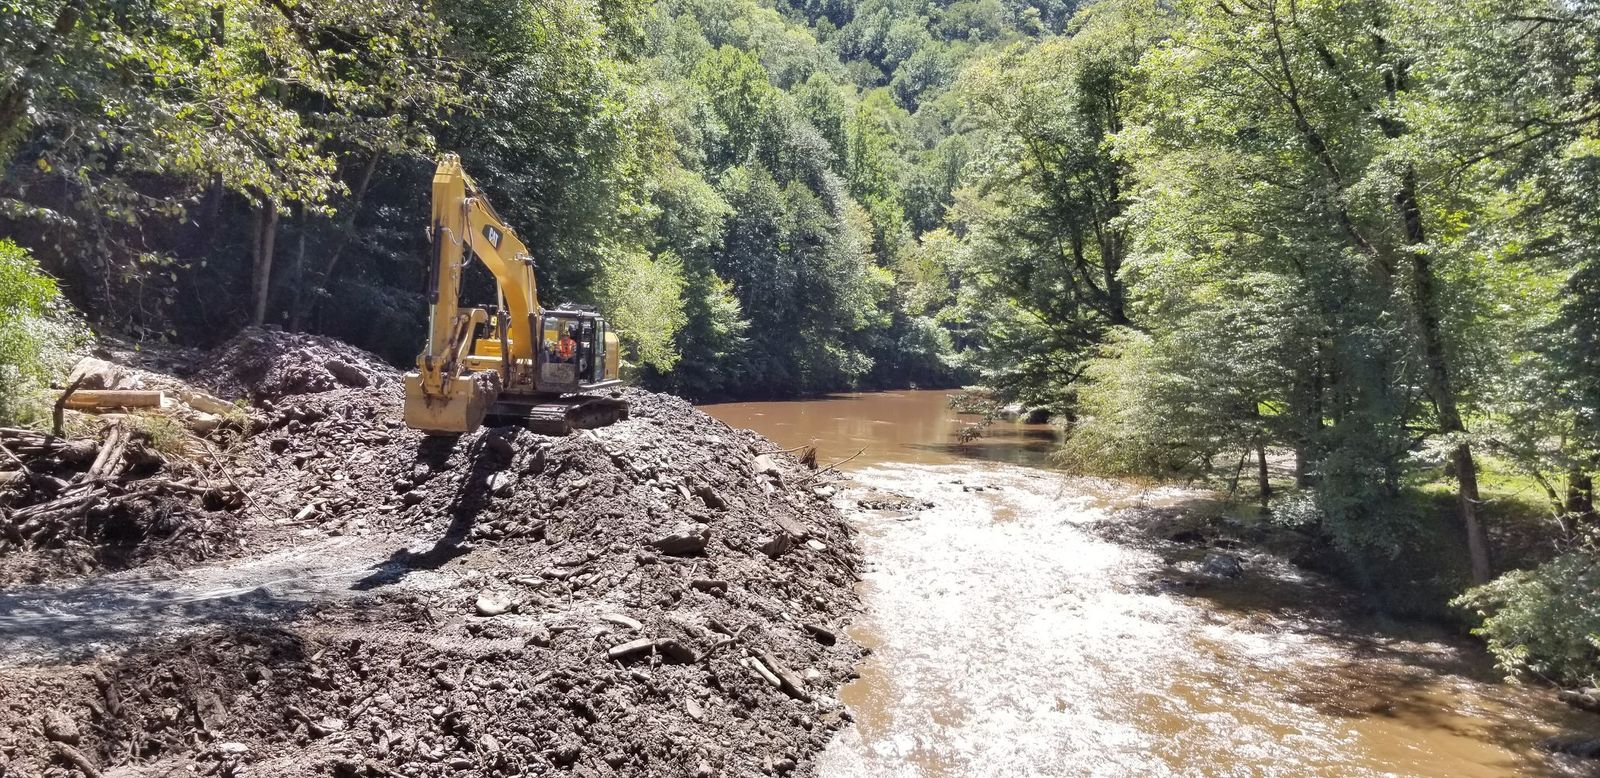 US Forest Service closes Nantahala Gorge during debris removal operations (Photo credit: United States Forest Service)